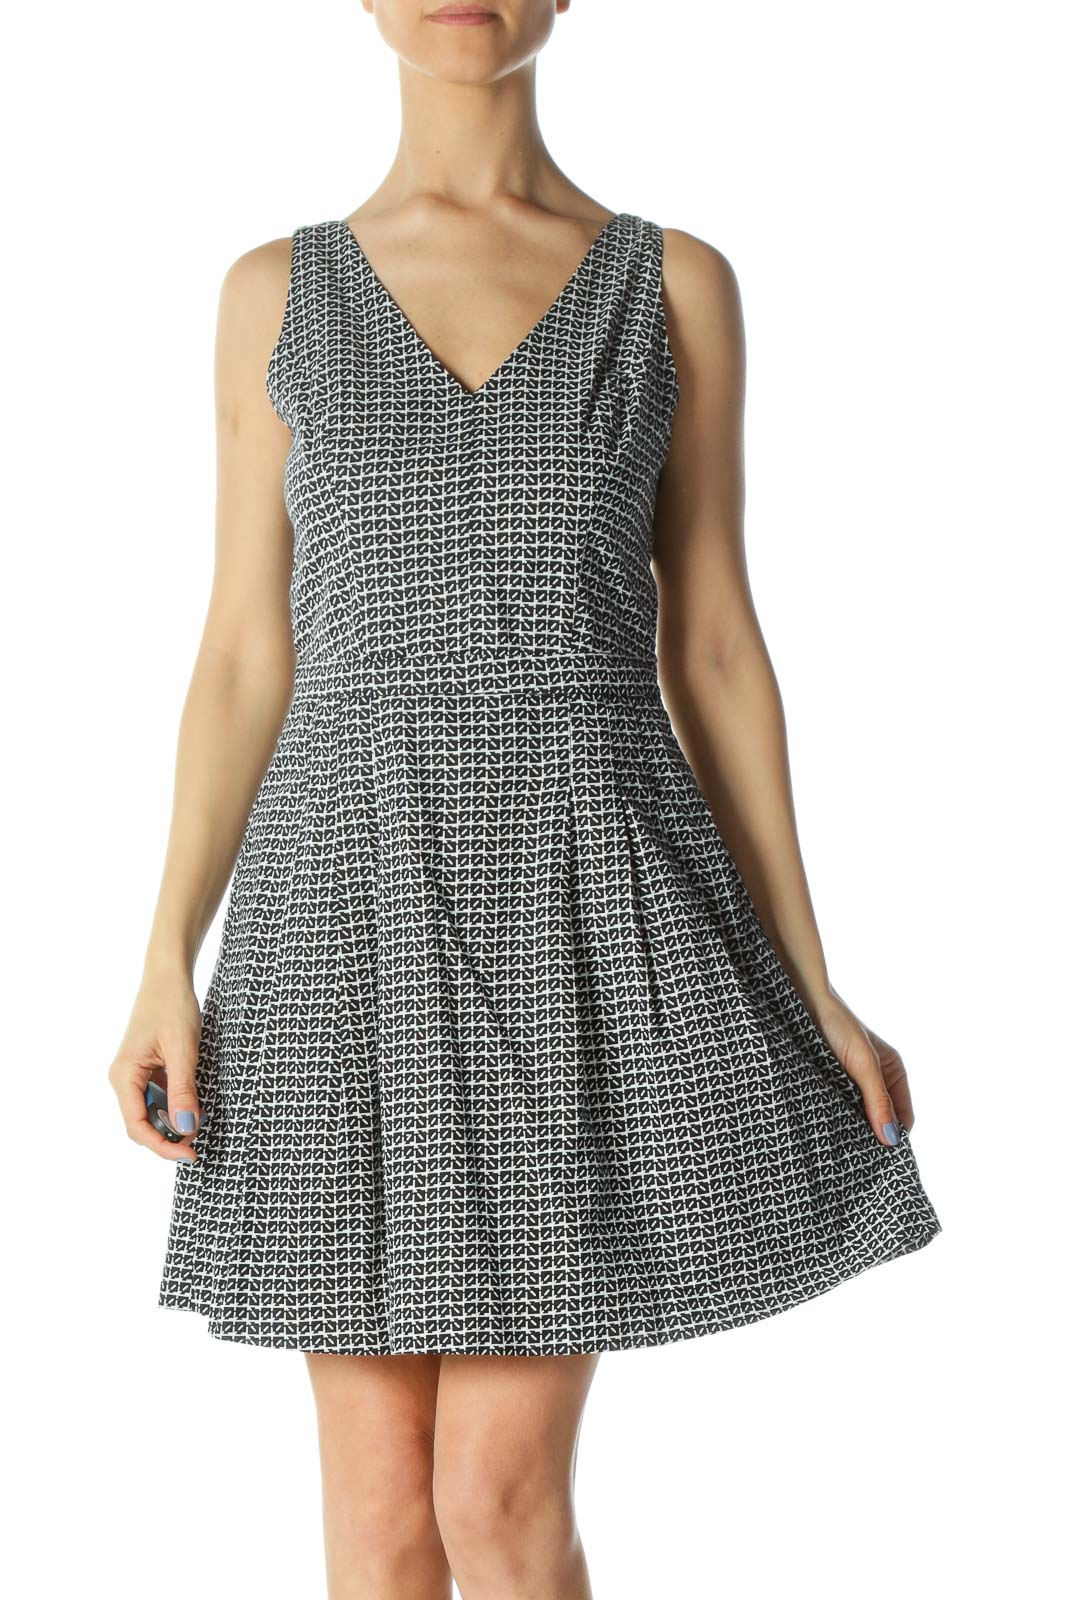 Black/White 100% Cotton Printed Back Knot and Cut-Out Dress